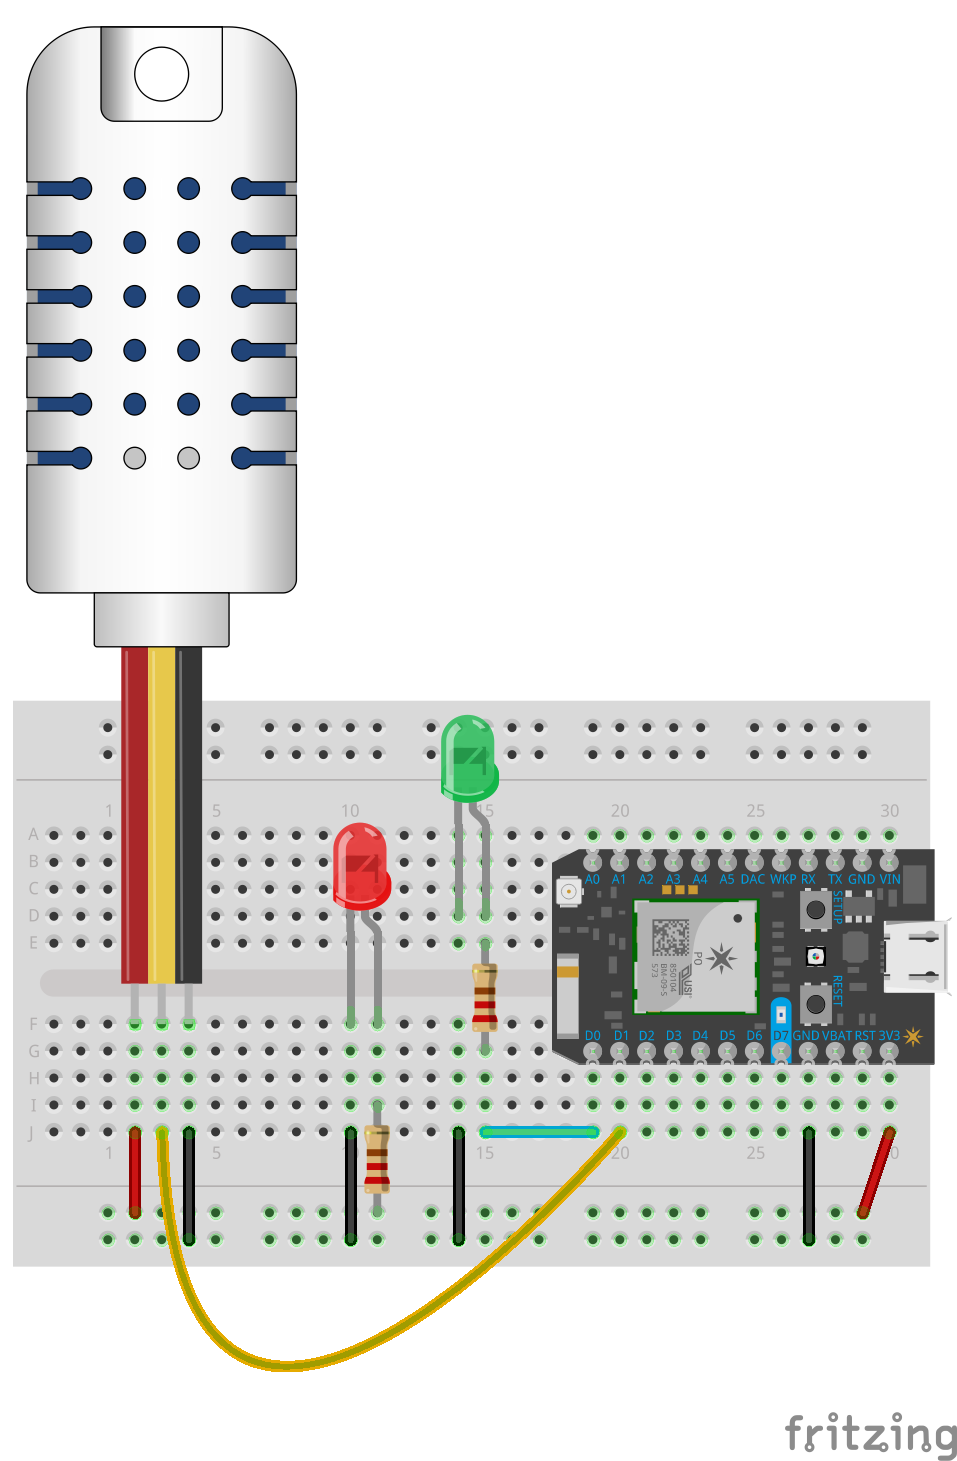 Weathersensors Indoor Mod At Master Ianlewis Github Usbpowered Pic Programmer Circuit Schematic Build The Firmware